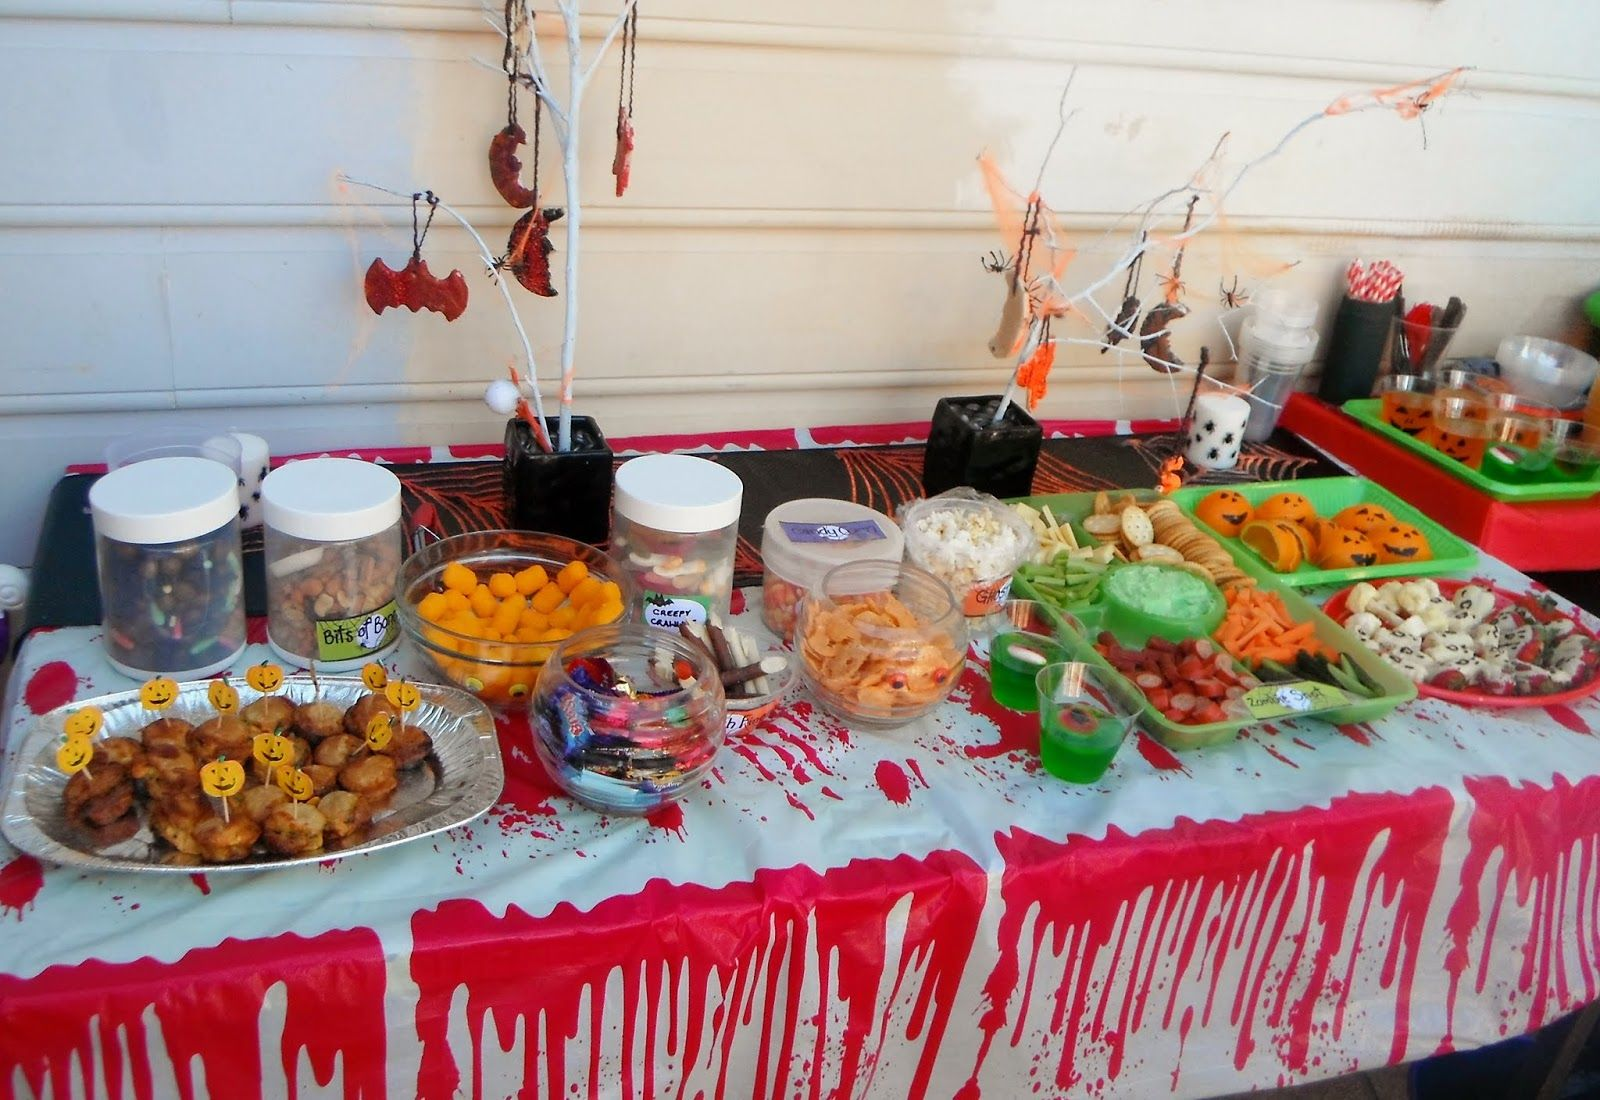 birthday party food ideas 1.find party food recipes that are easy